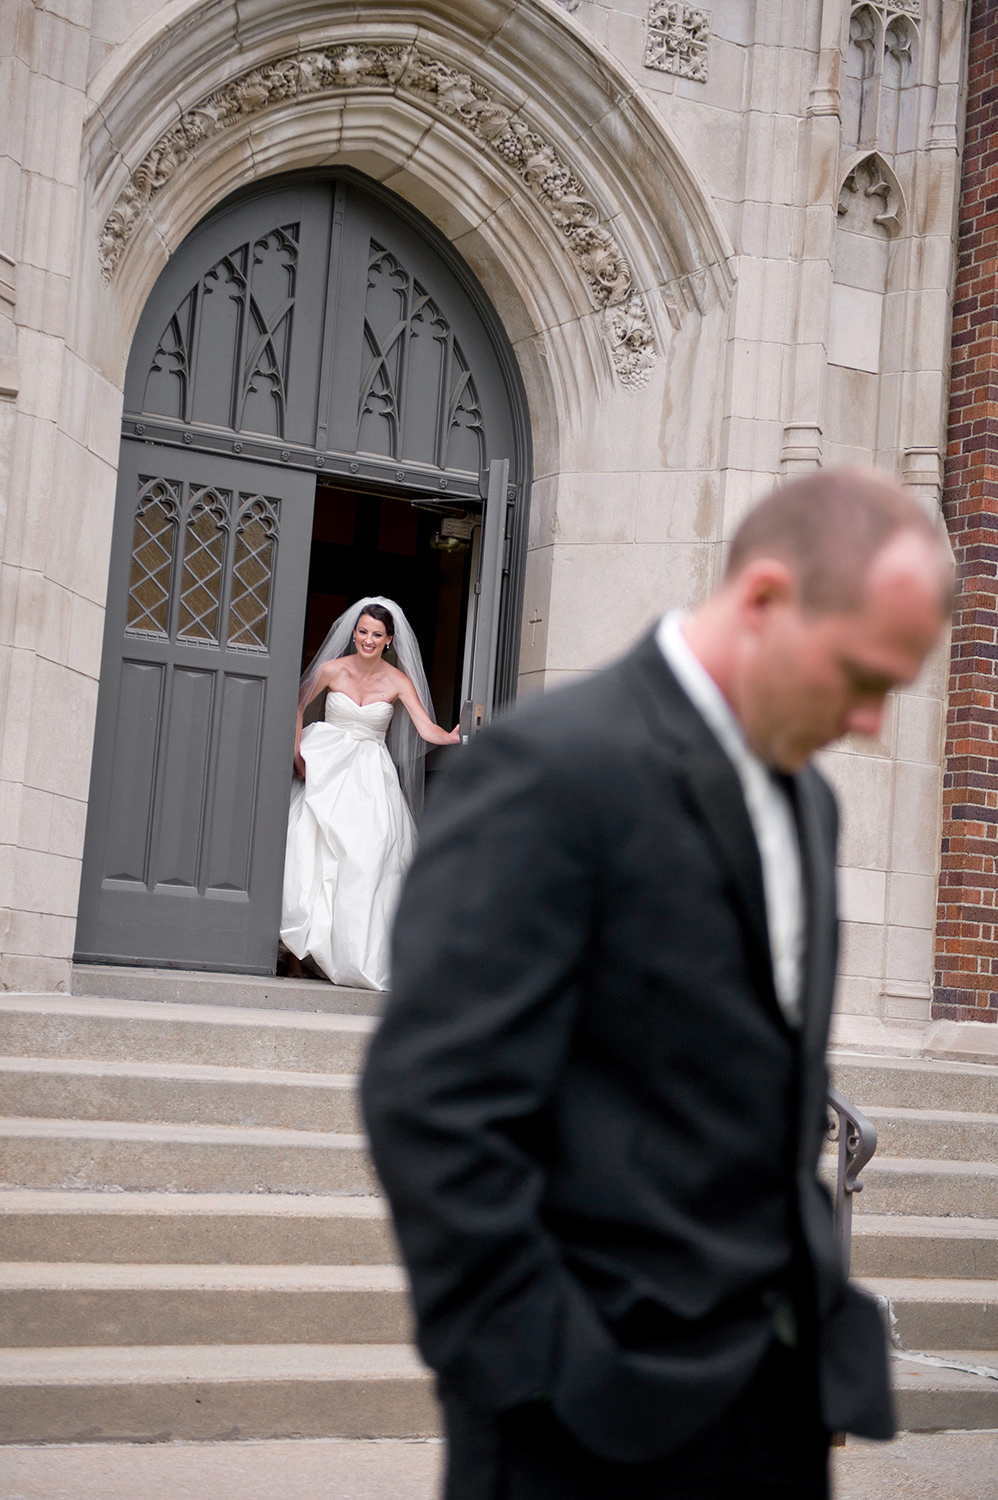 wedding-photography-minneapolis-mark-kegans-420.jpg